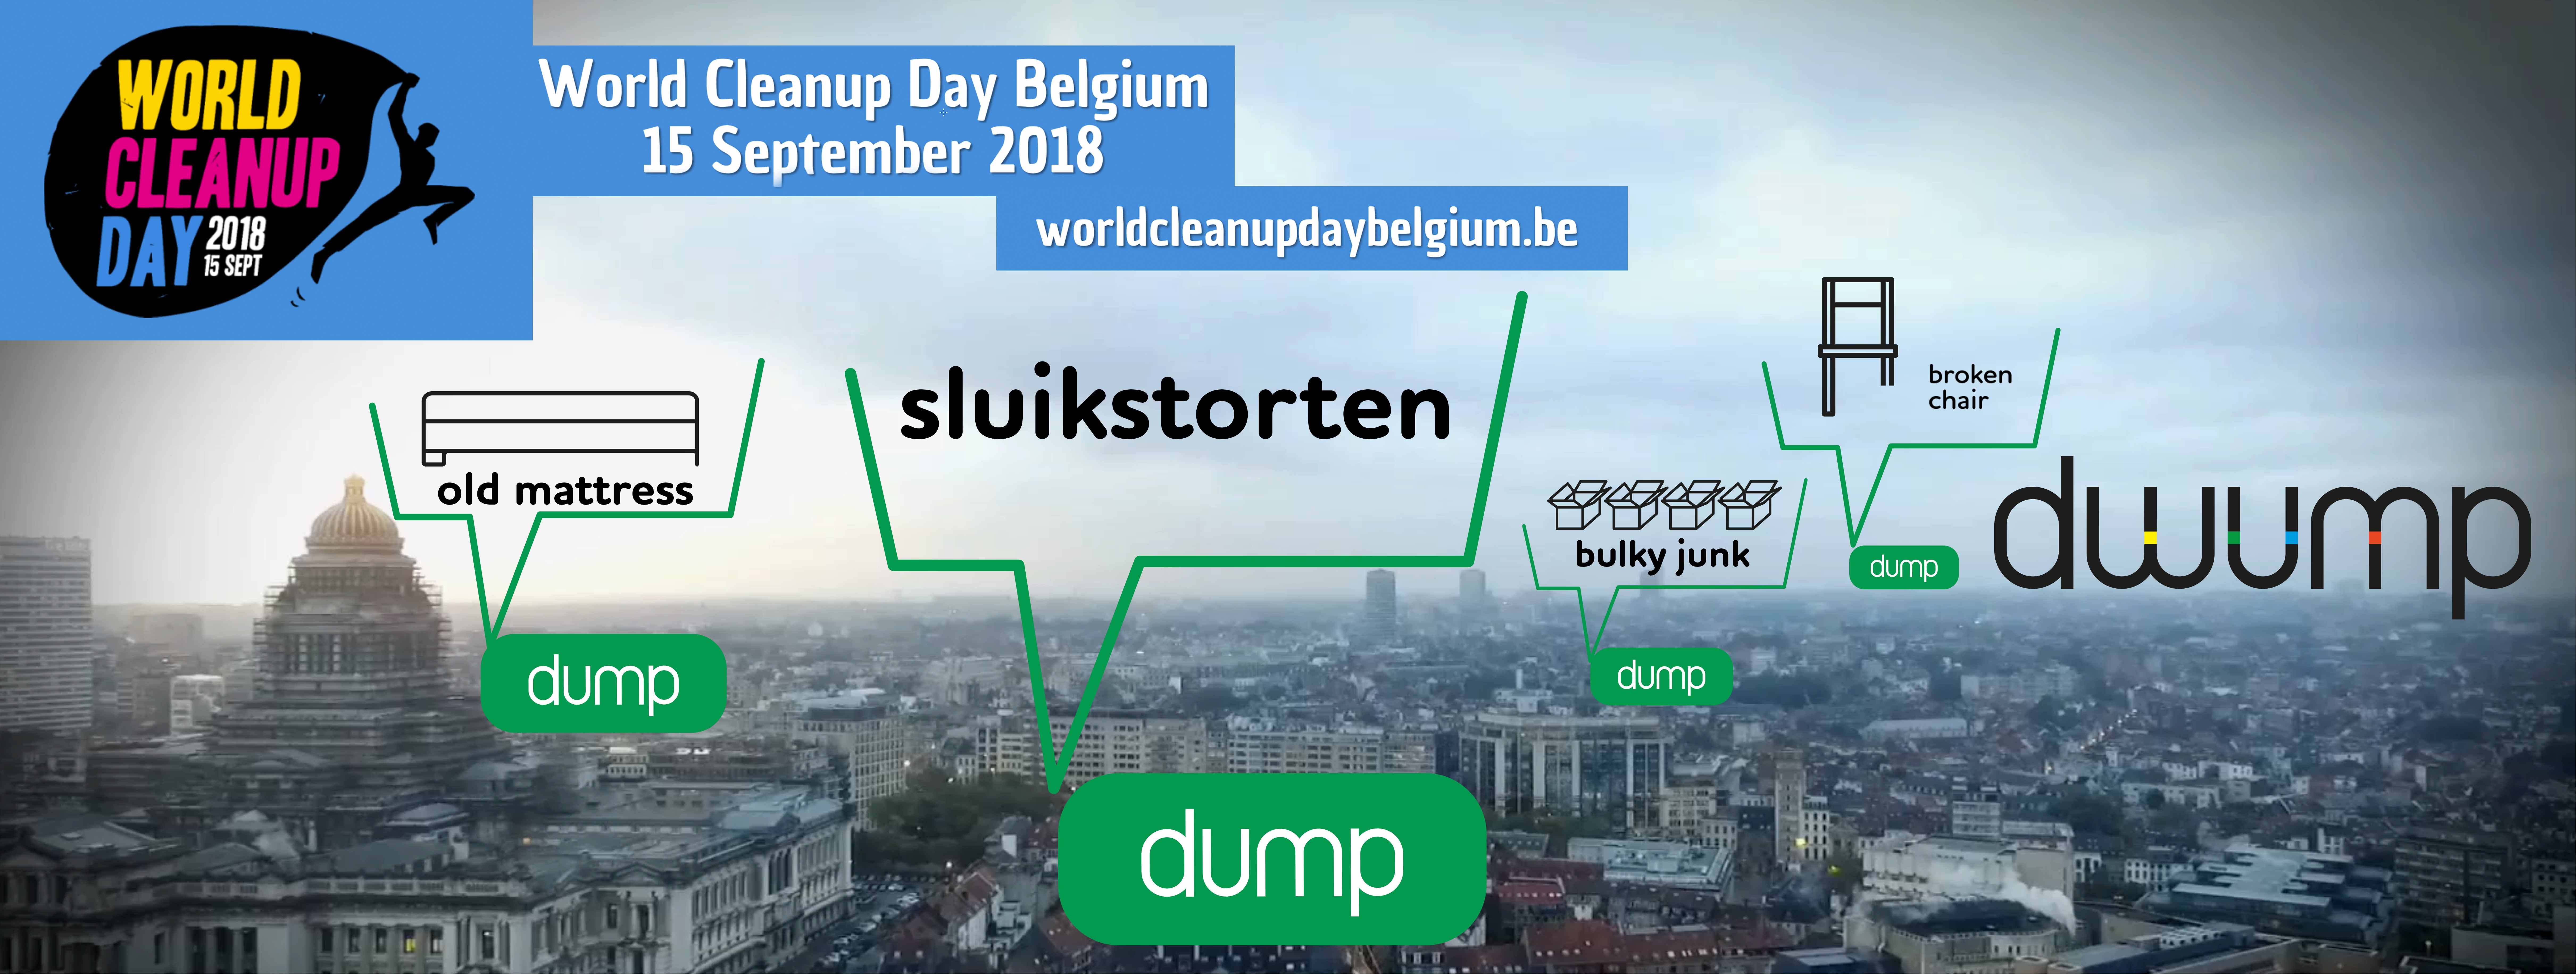 Dwump worldcleanup day